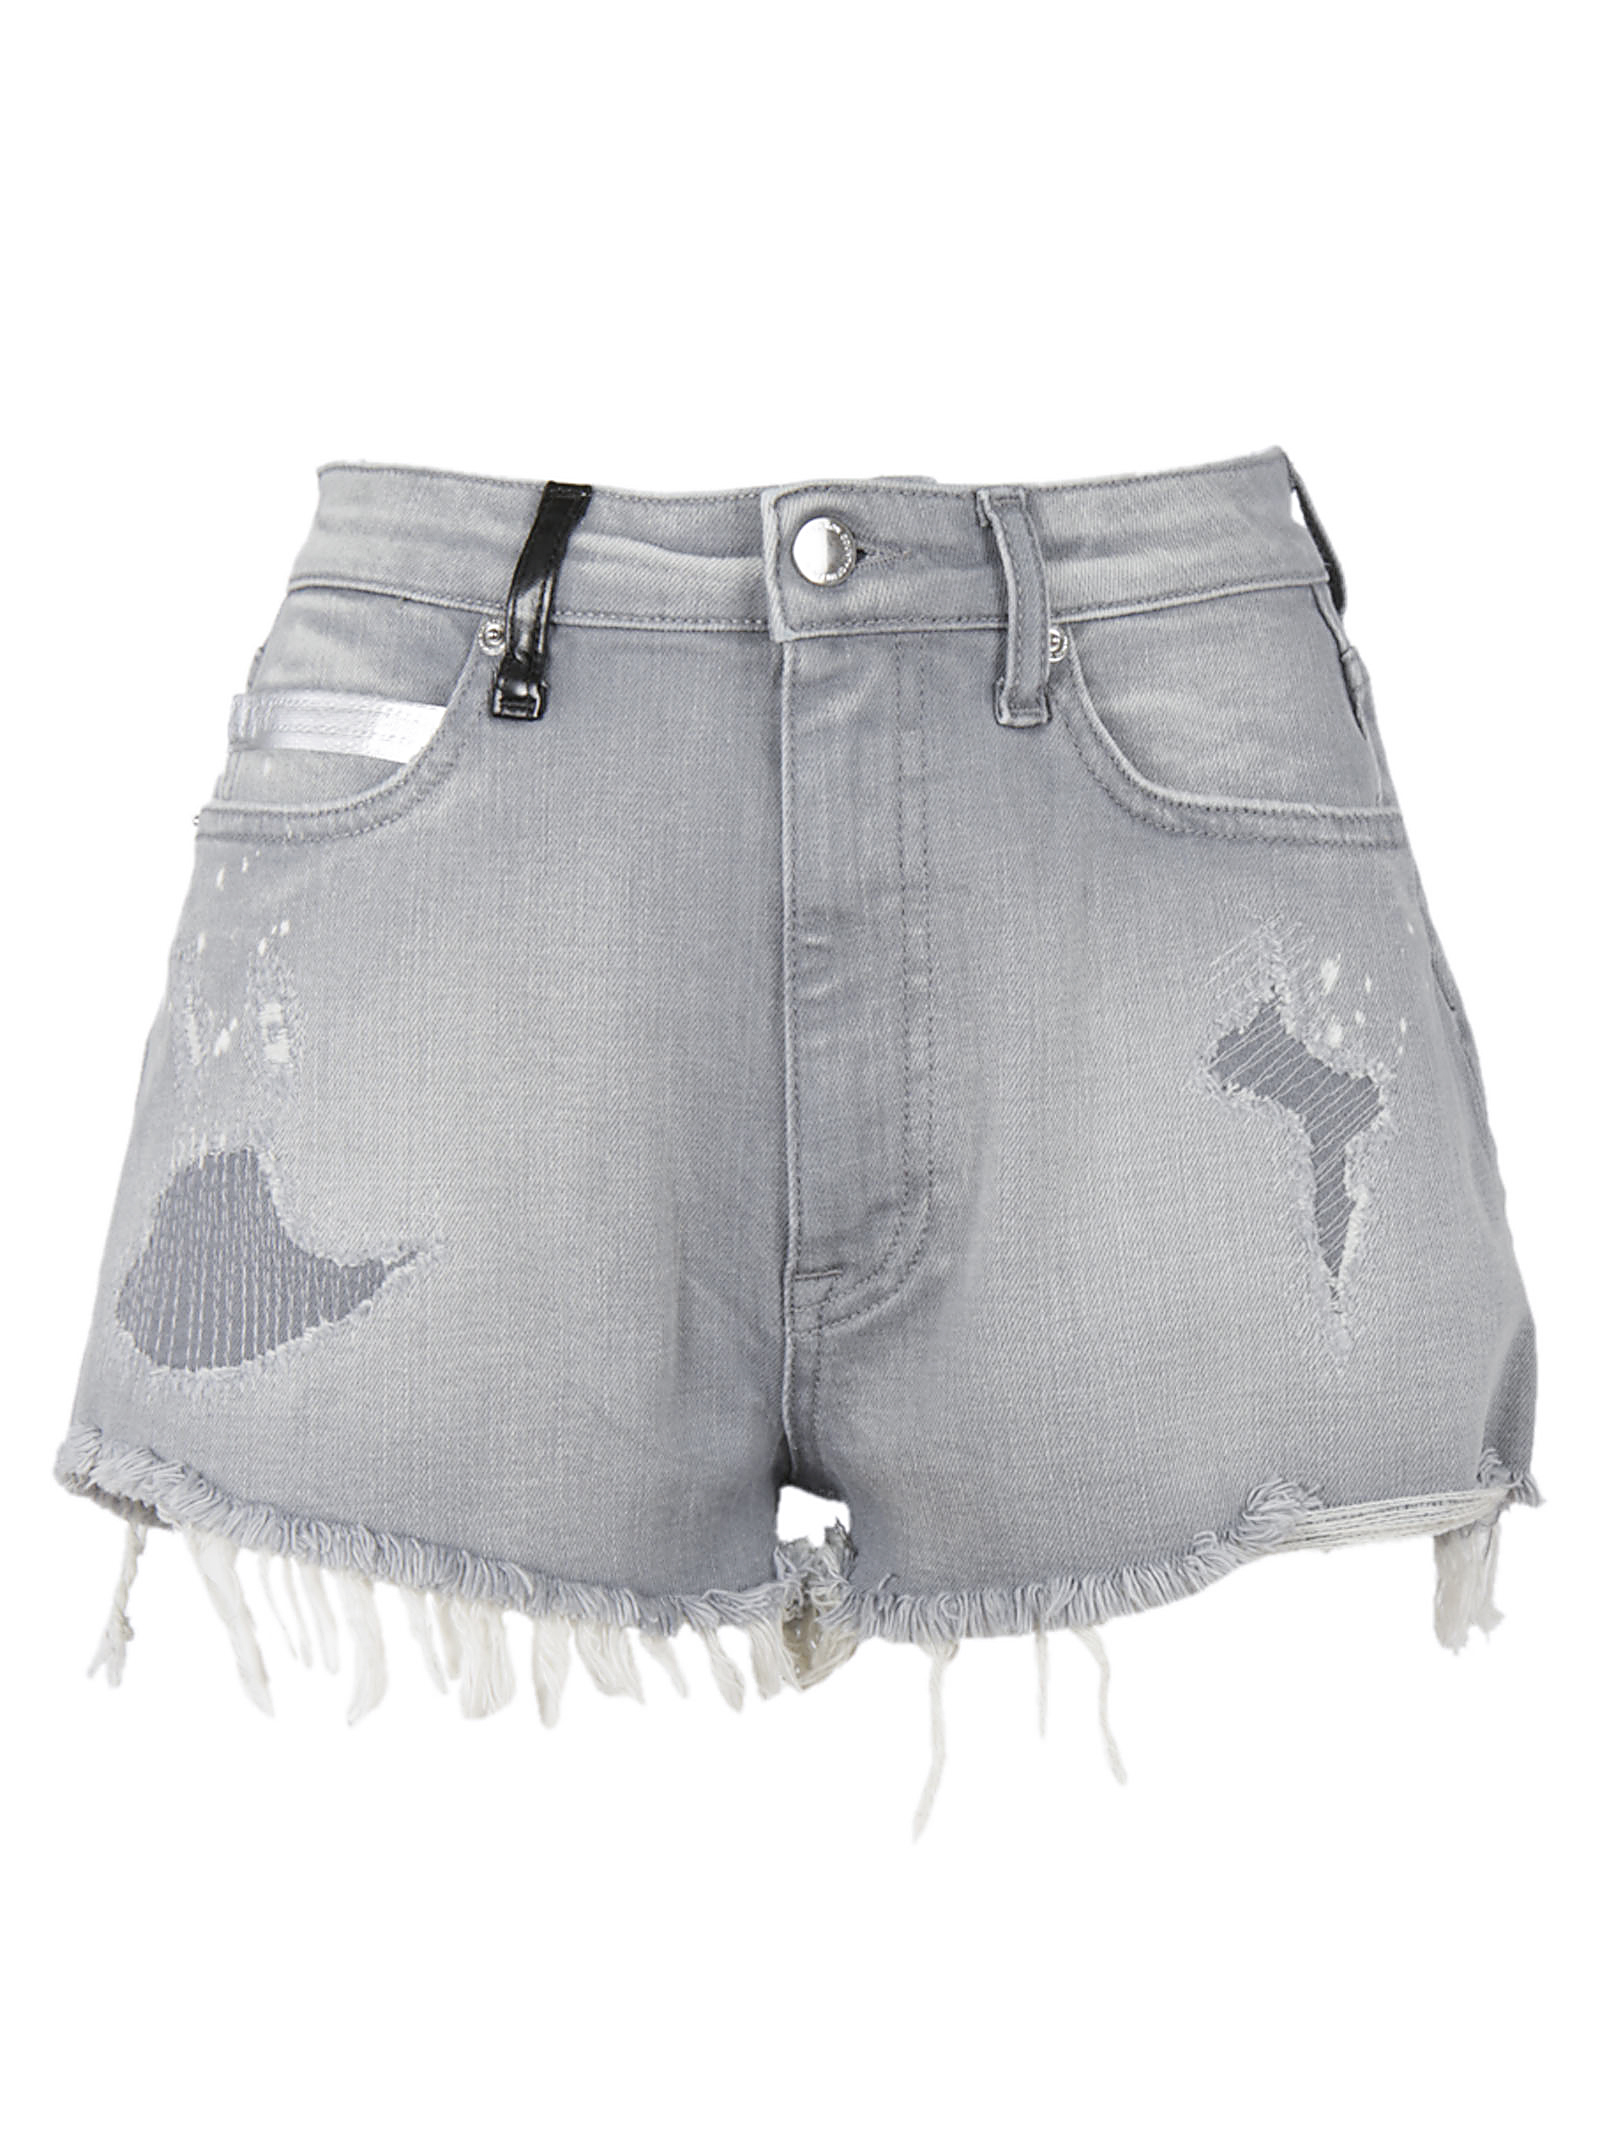 MARCELO BURLON WOMAN Marcelo Burlon Distressed Denim Shorts